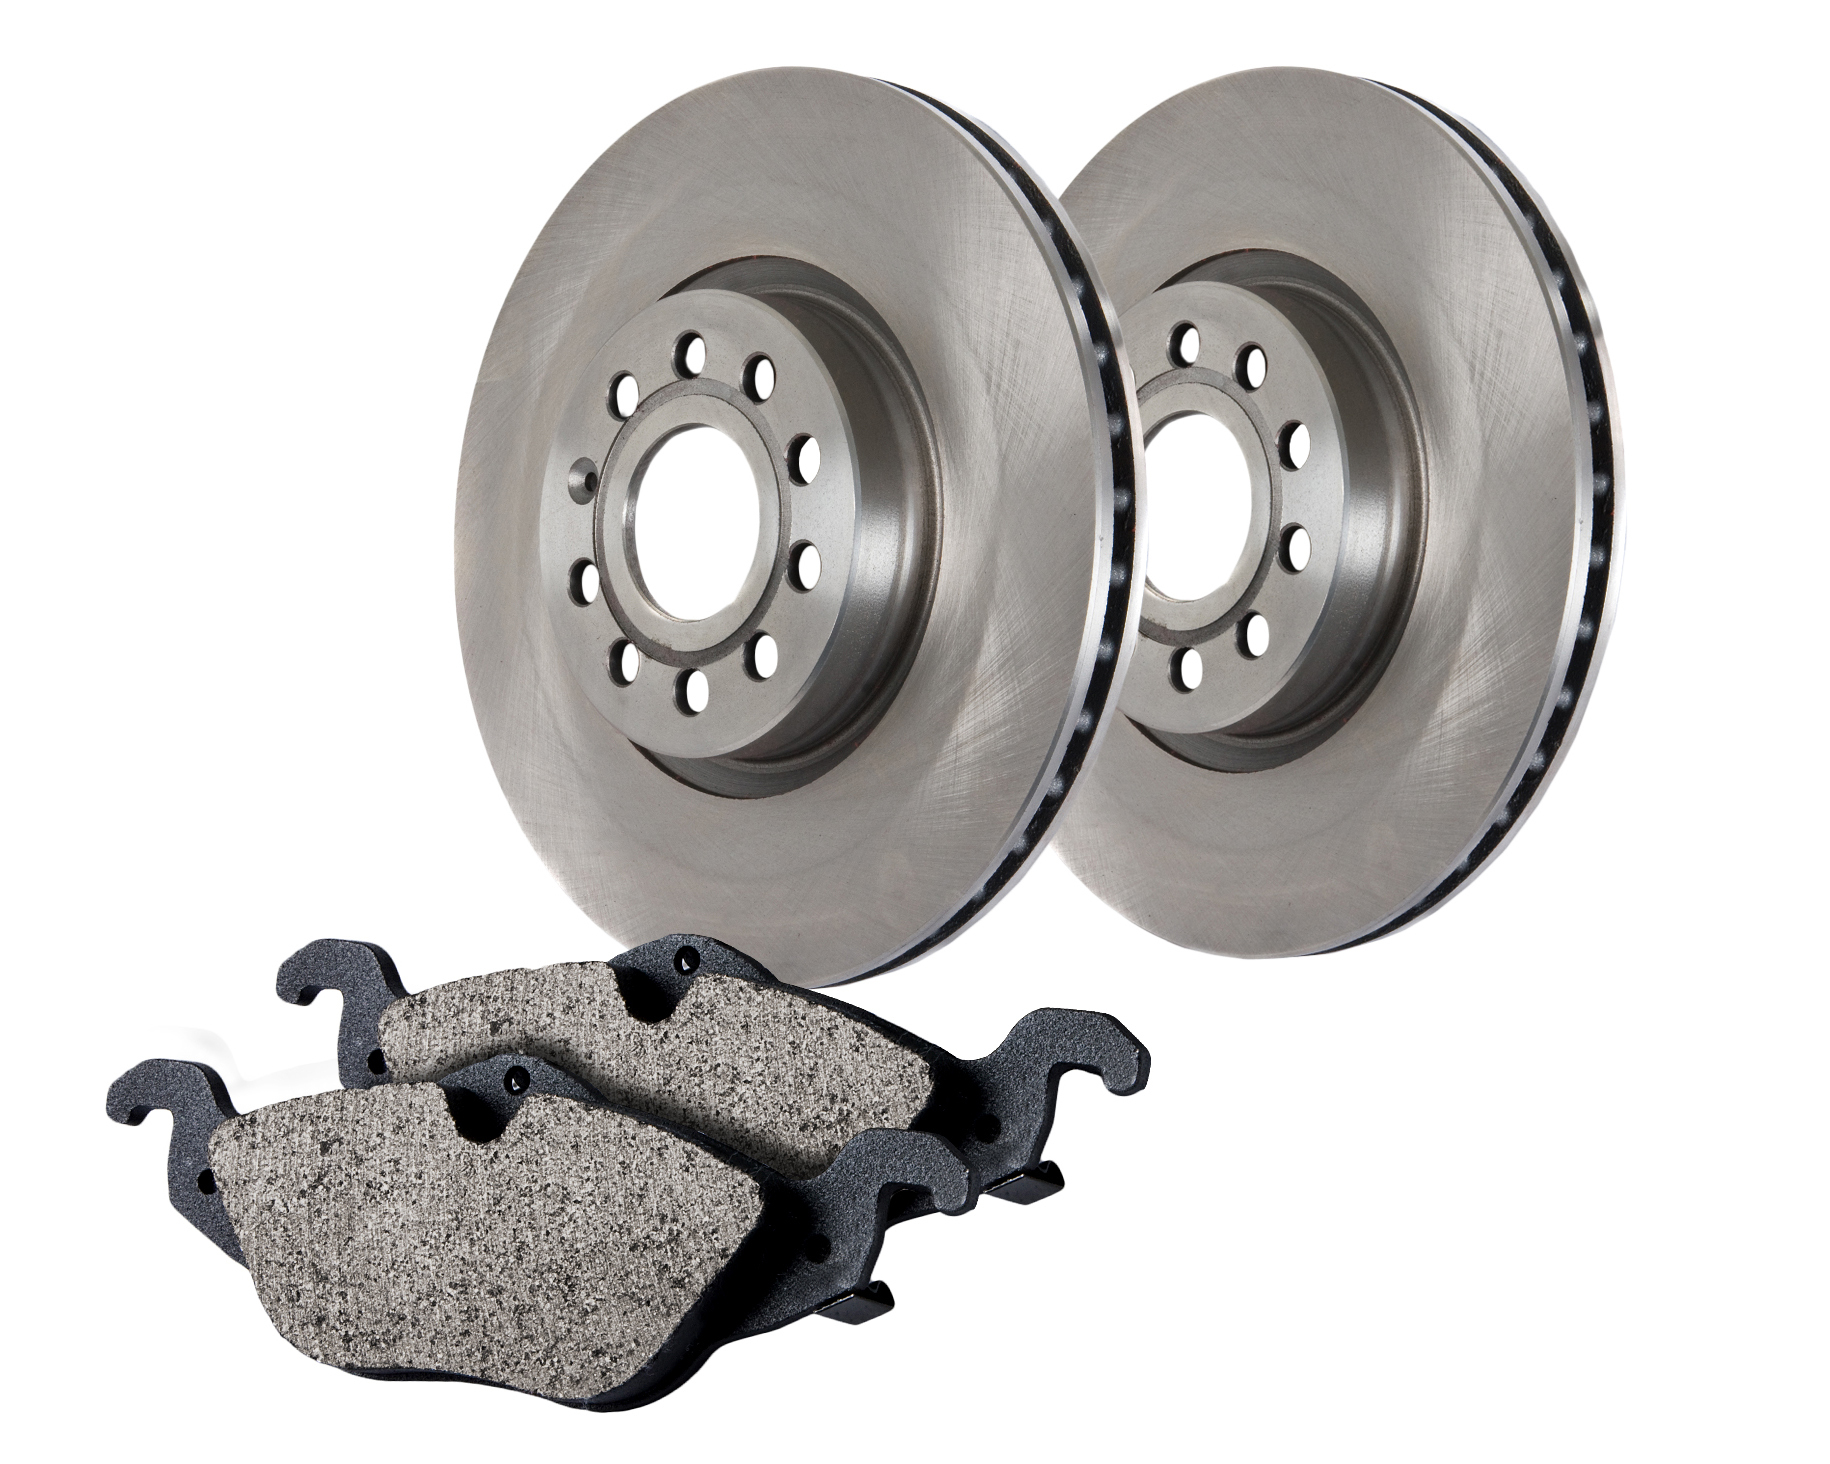 Centric Brake Parts 905.51001 Brake Rotor and Pad Kit, Premium, Semi-Metallic Pads, Iron, Natural, Hyundai Accent 2012-17 / Kia Rio 2012-16, Kit